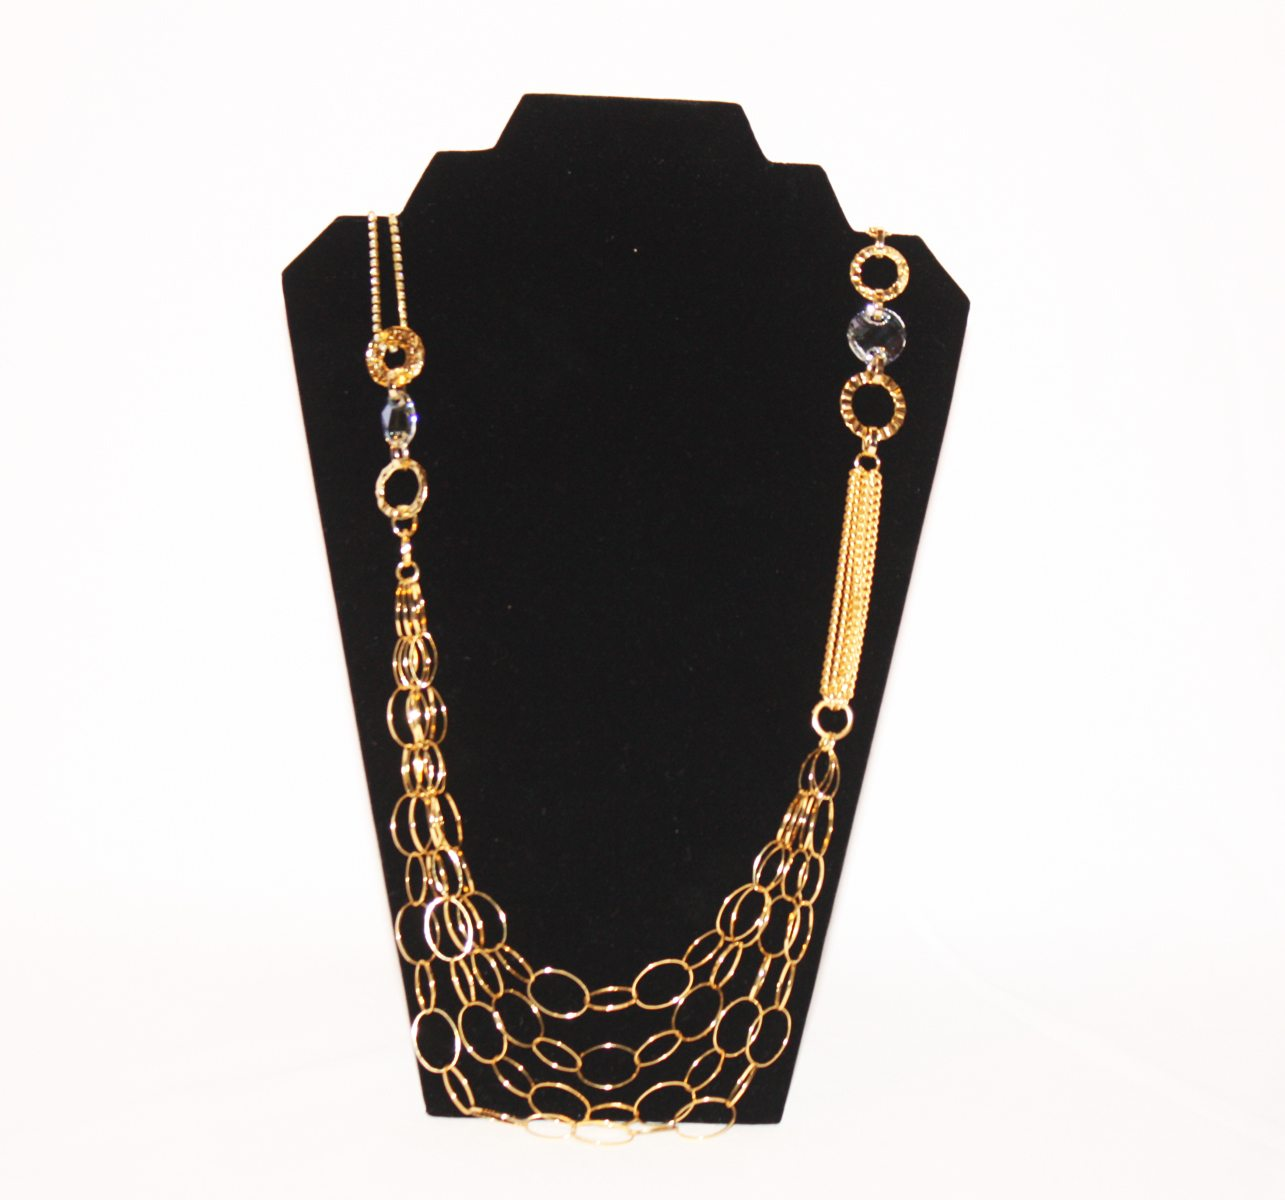 B-JWLD Long Gold Intertwined Necklace